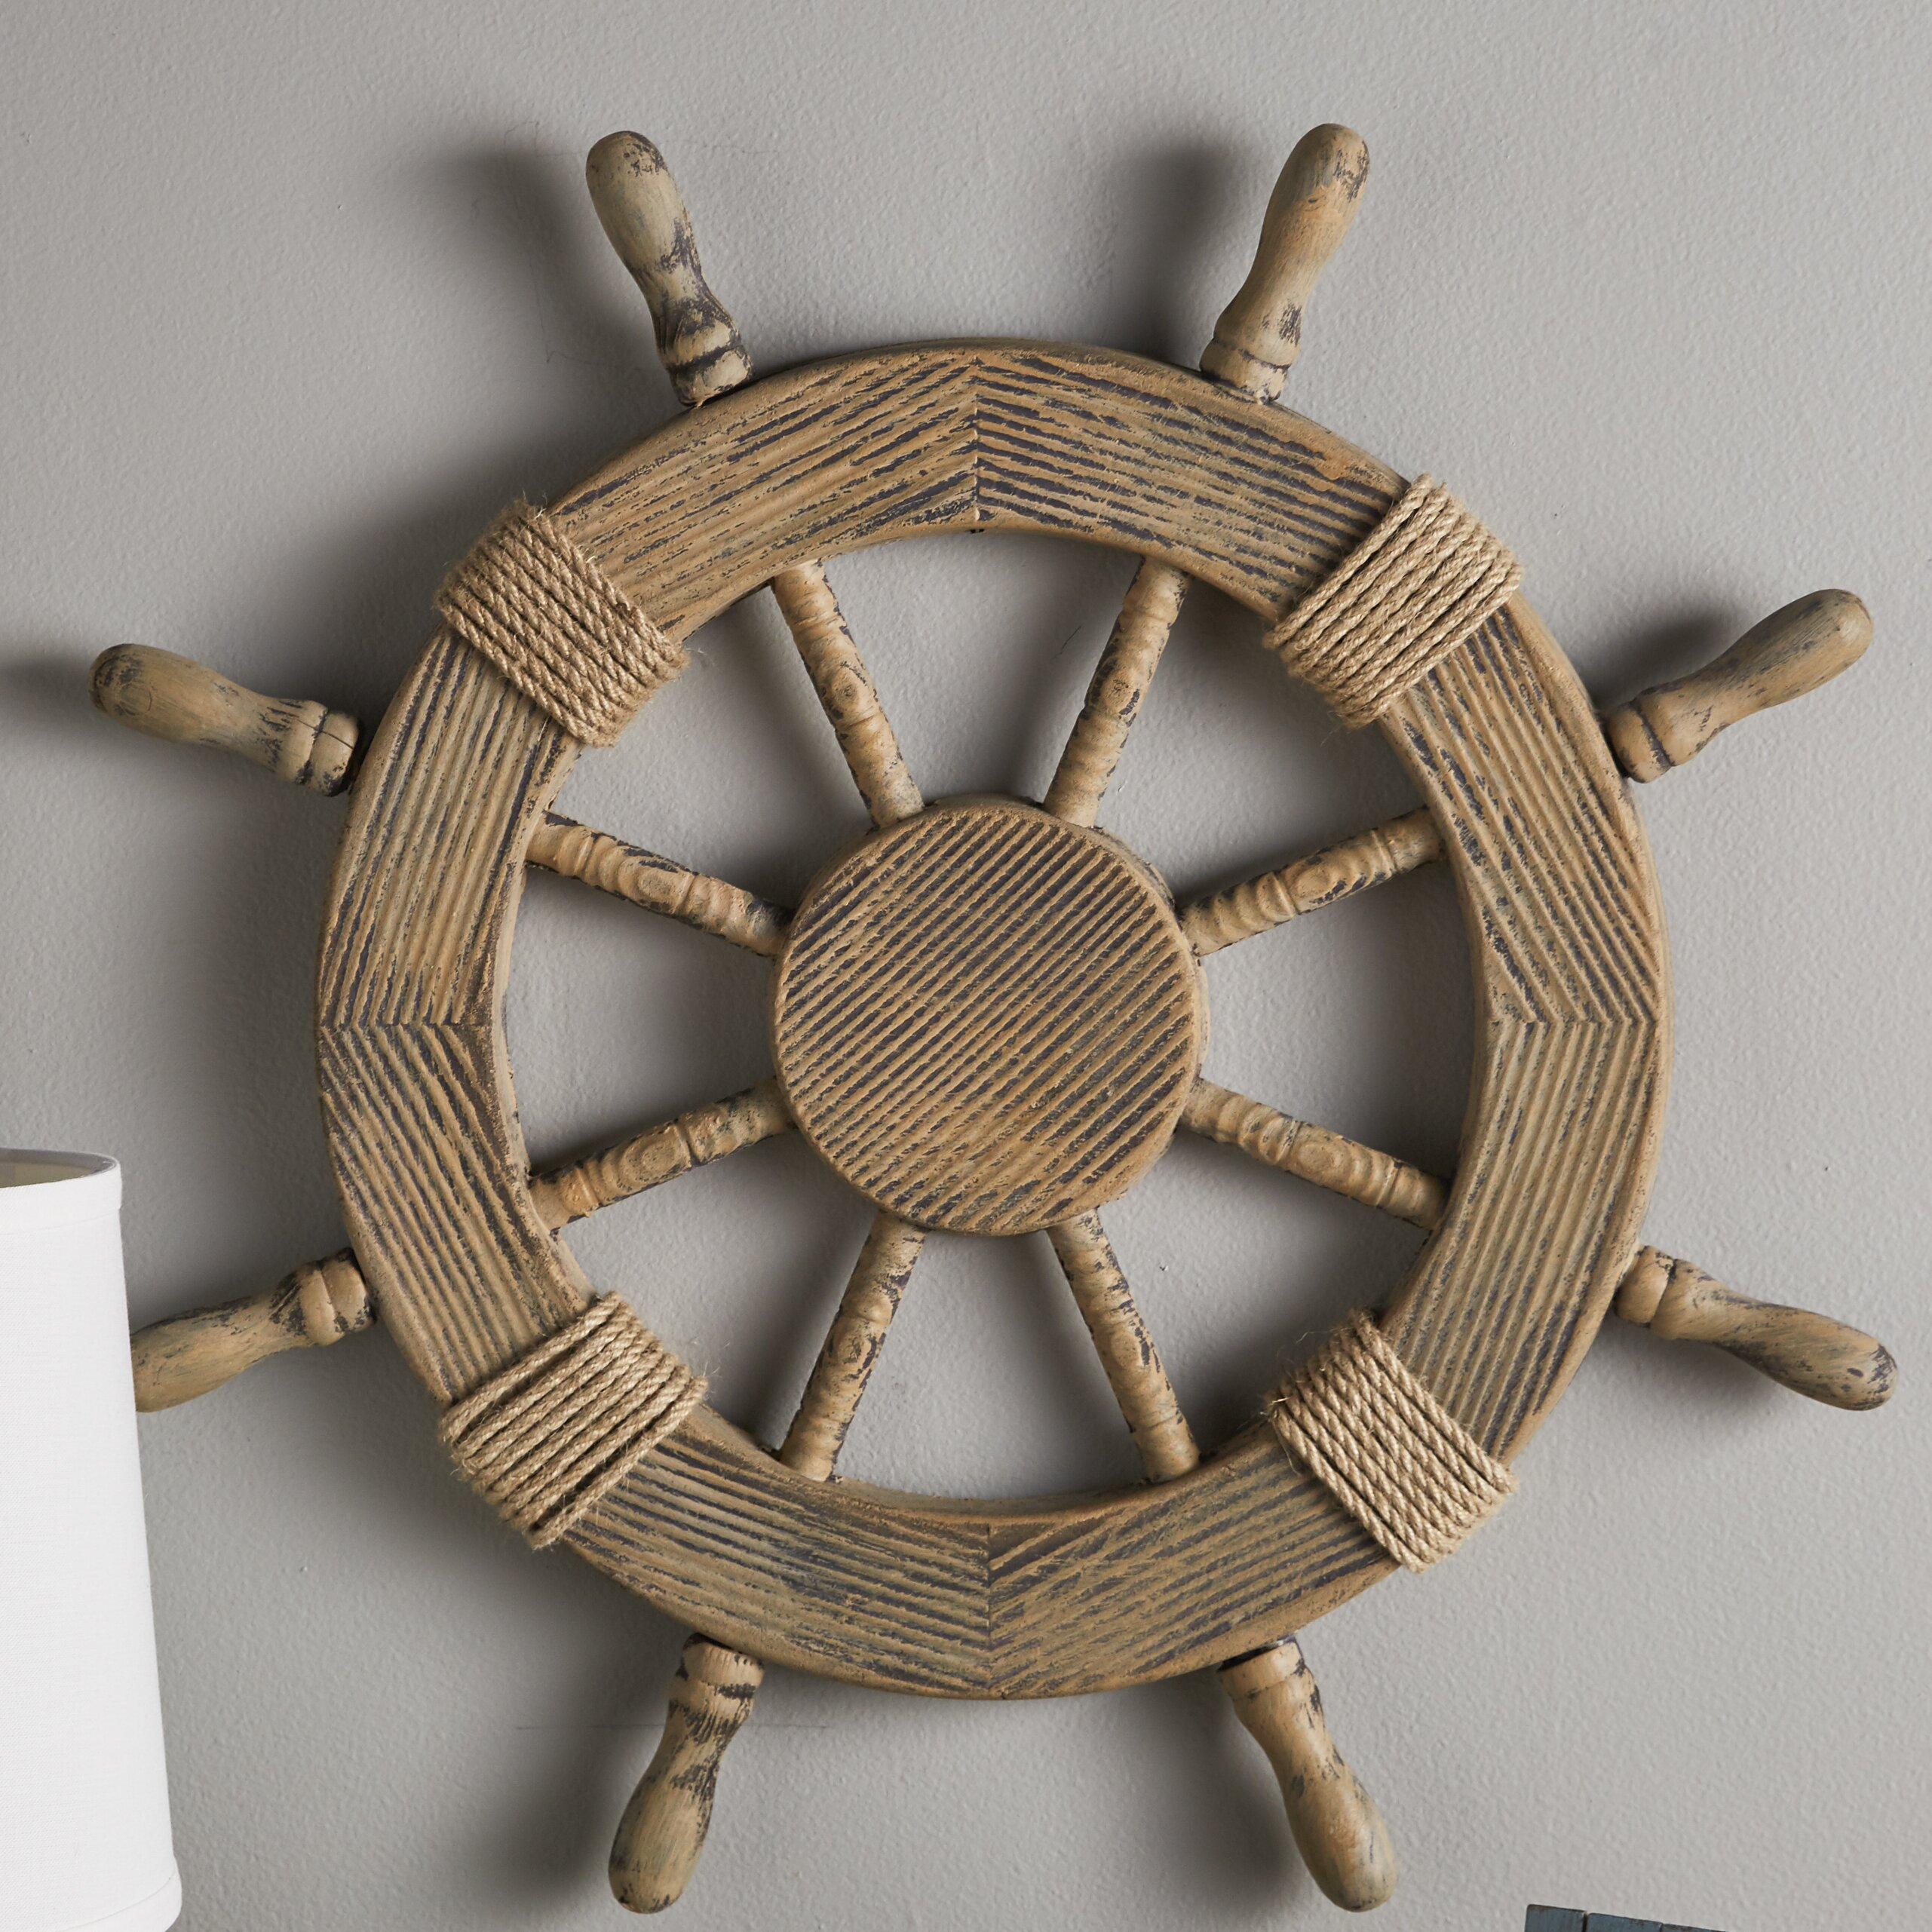 Captains wheel wall decor instadecor captains wheel wall decor amipublicfo Images